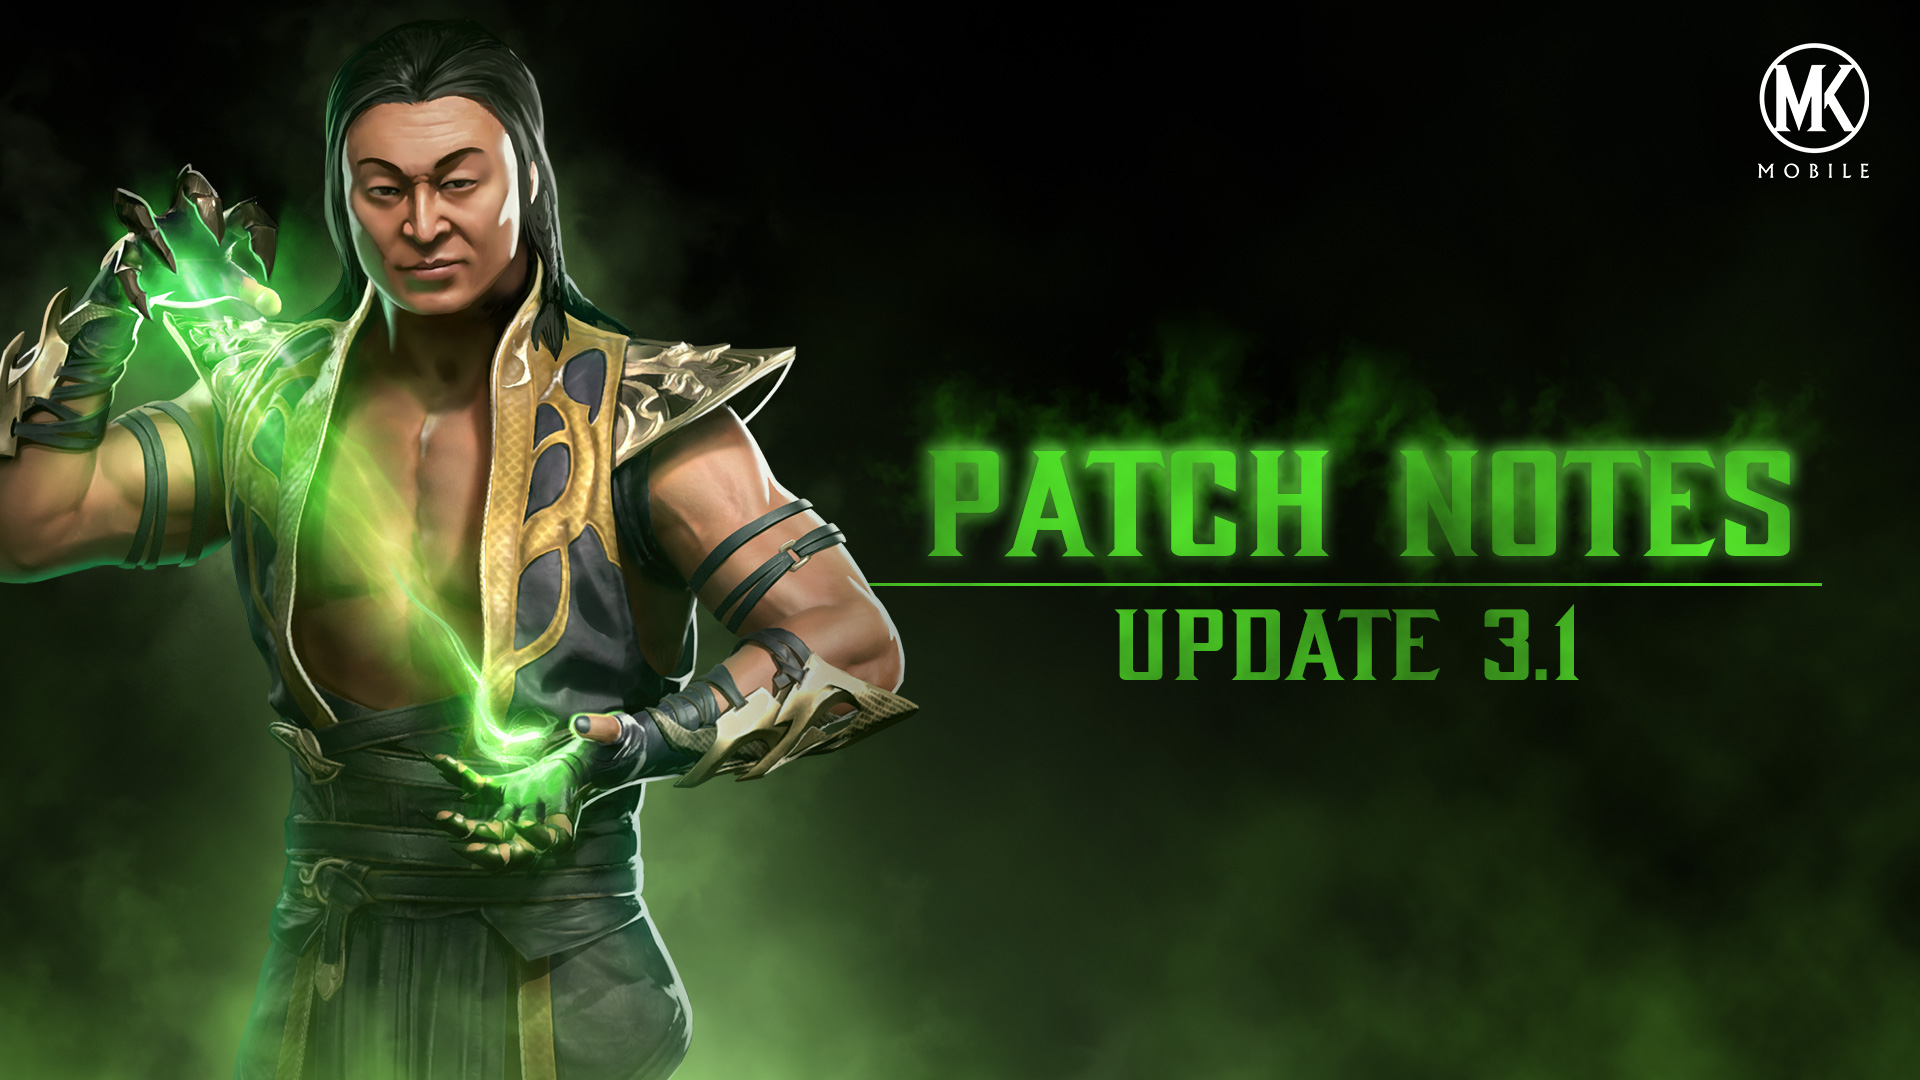 PATCH_NOTES_3-1.jpg